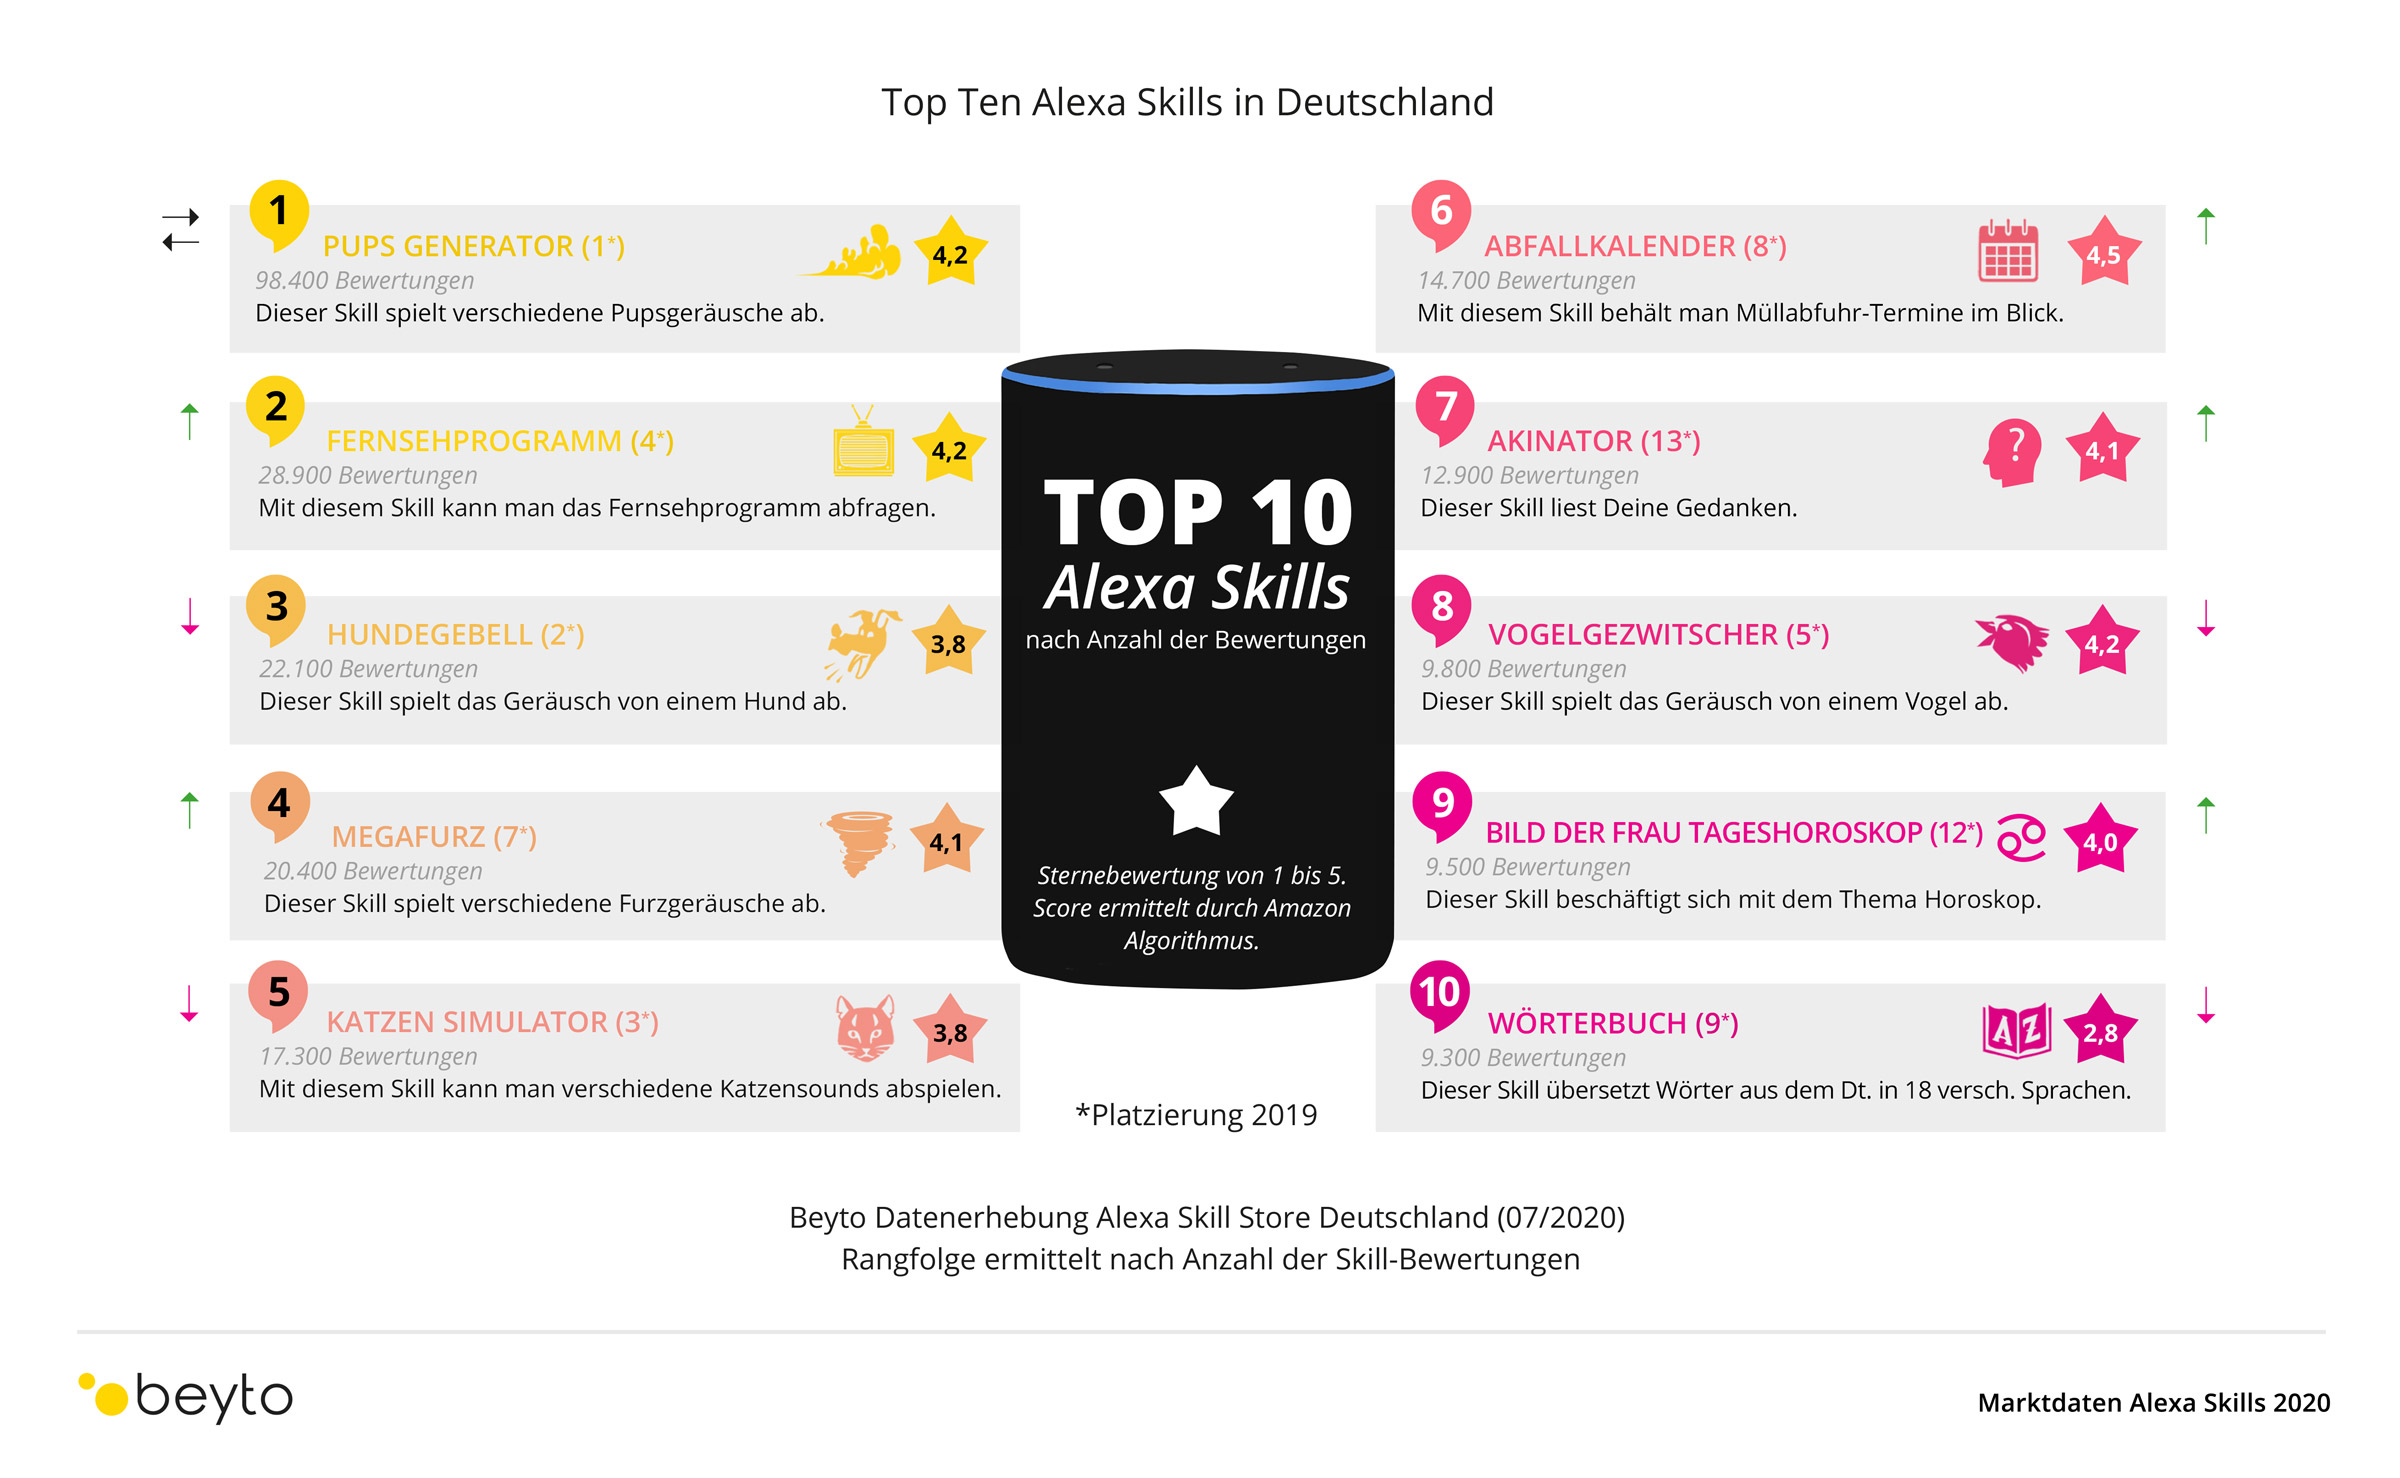 Top Ten der Alexa Skills